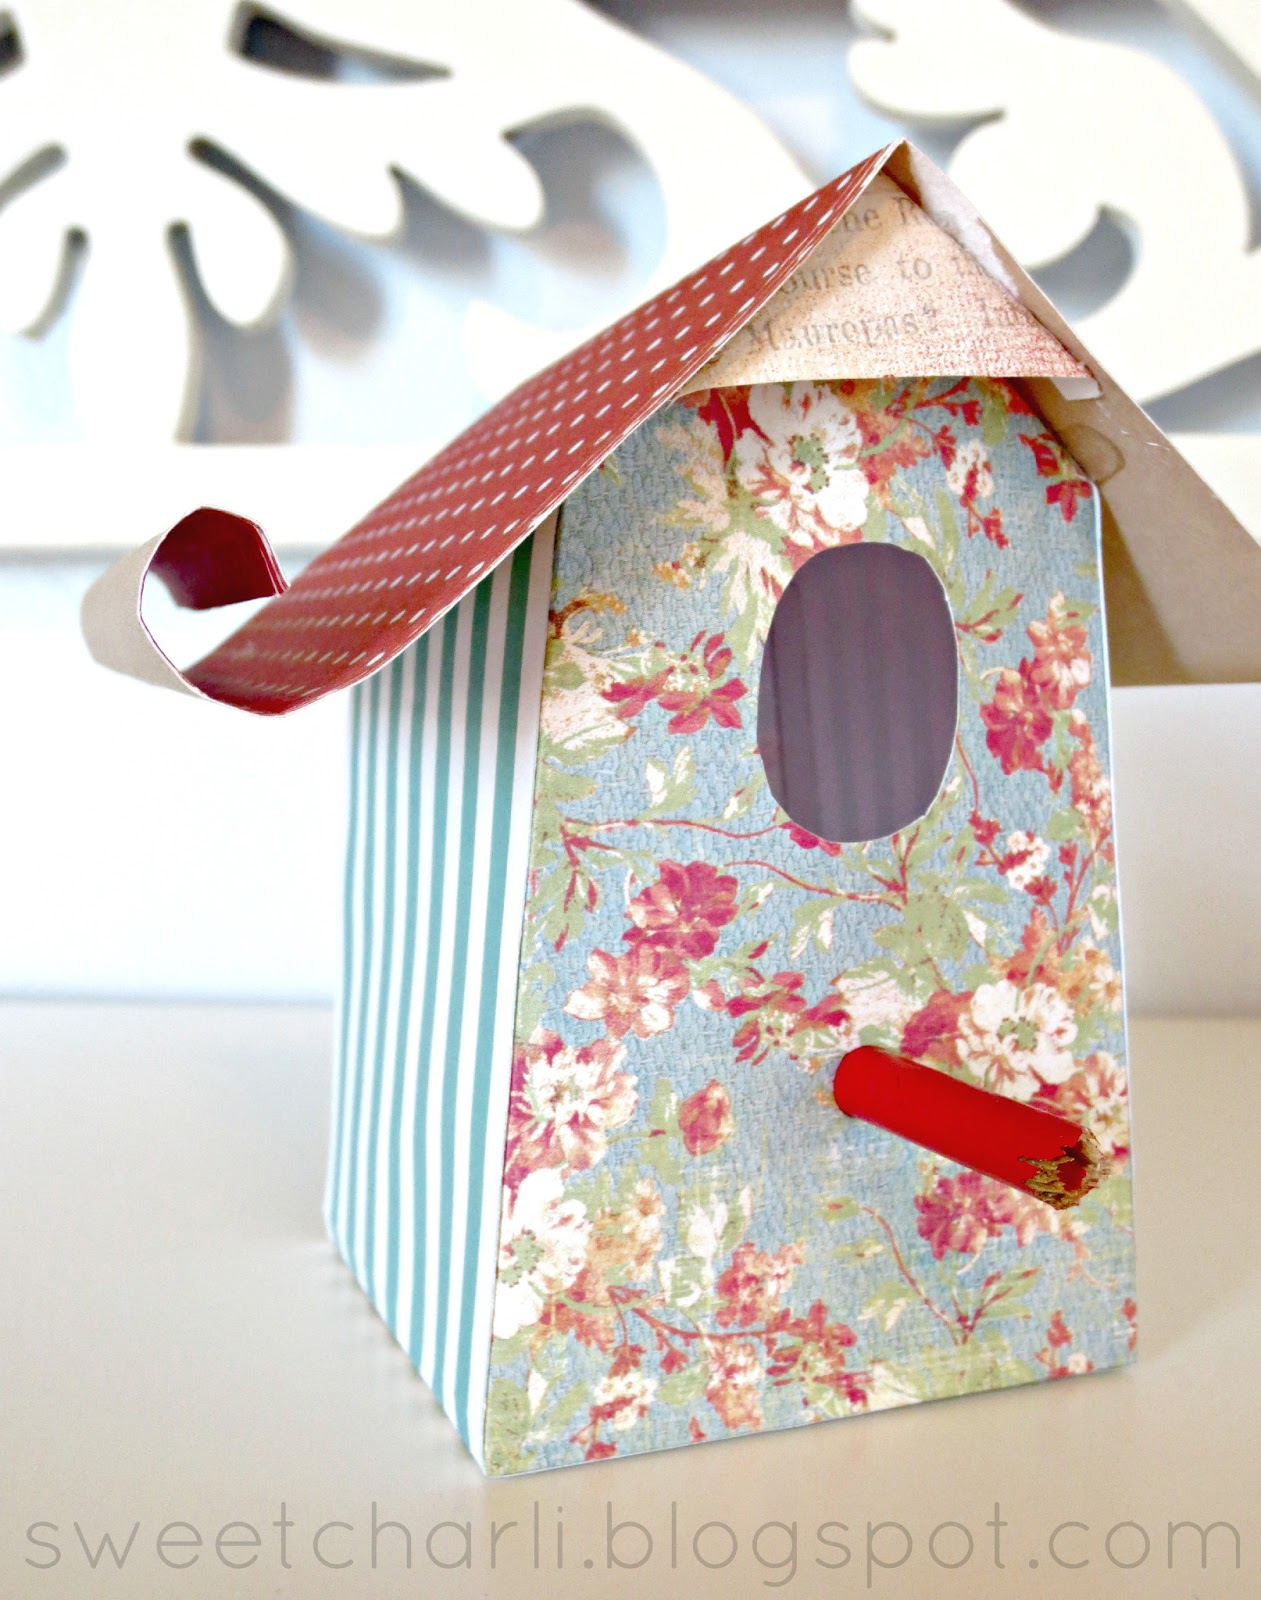 HERE ARE THE TEMPLATES Small Square Birdhouse